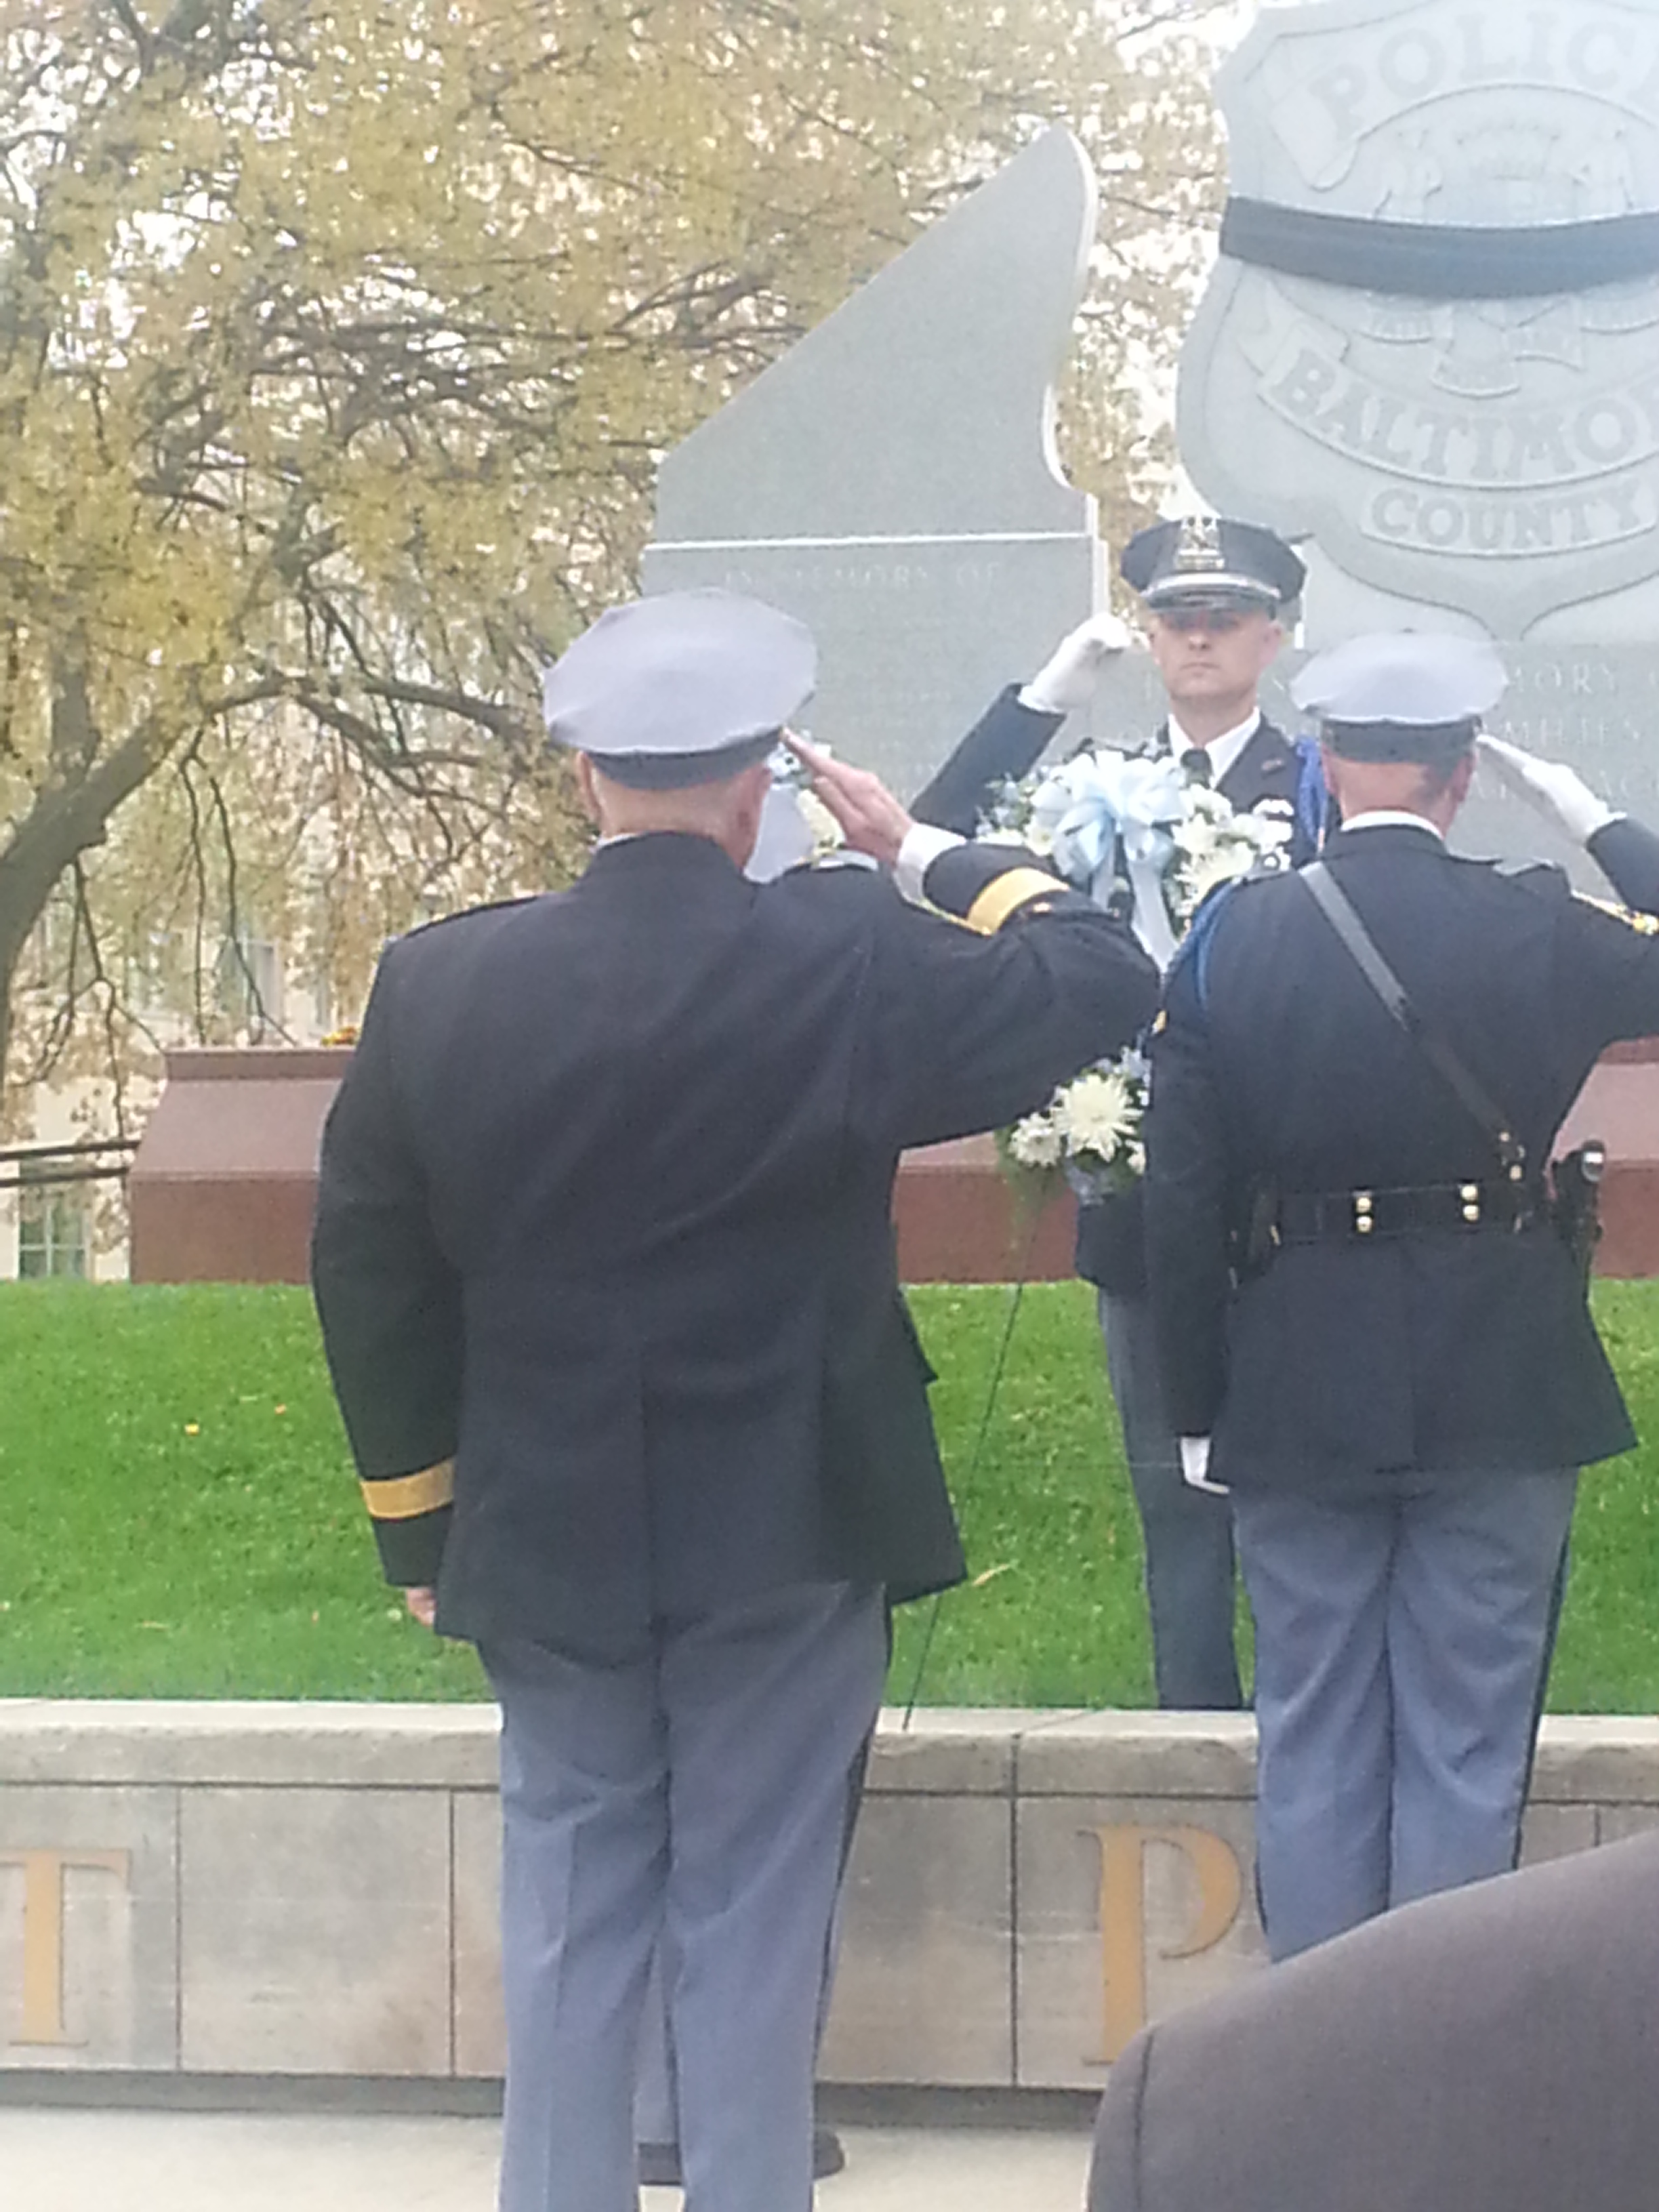 Chief Johnson lays a wreath at the Police Memorial in Patriot Plaza.